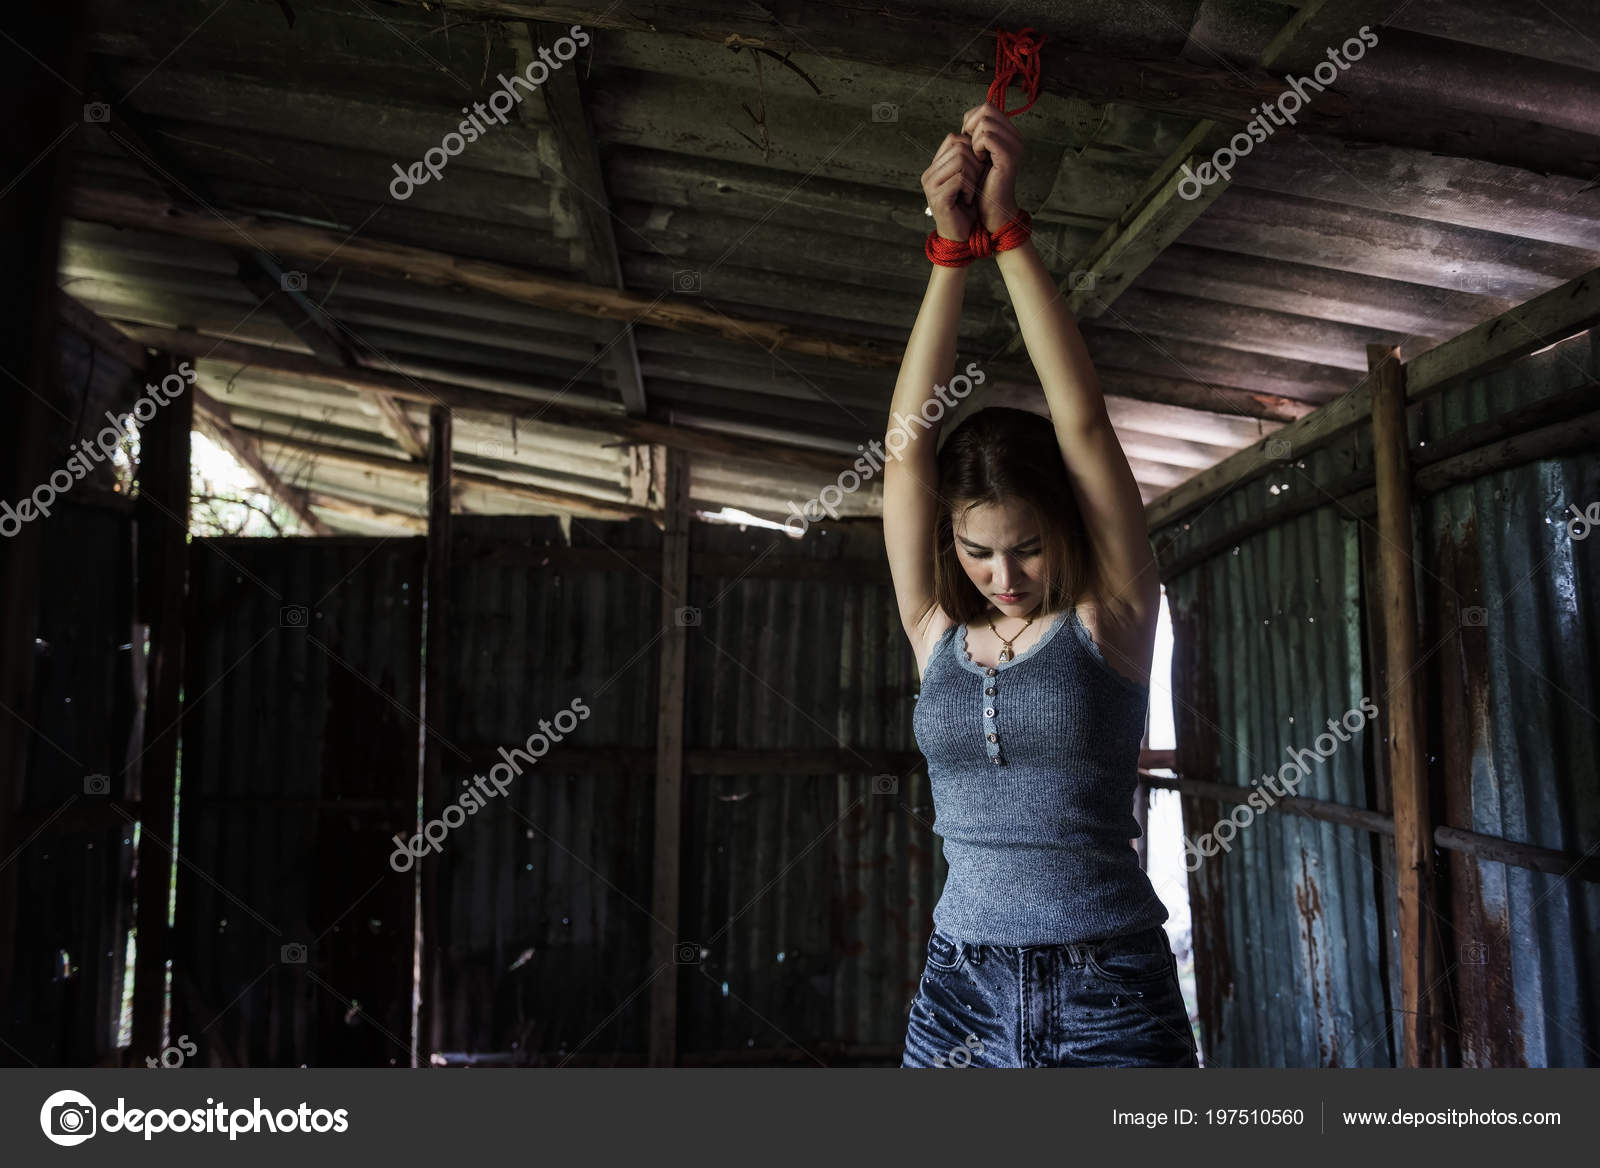 Depress Beautiful Asian Girl Tied Hands Red Rope Dirty Roof  Stock Photo -5009